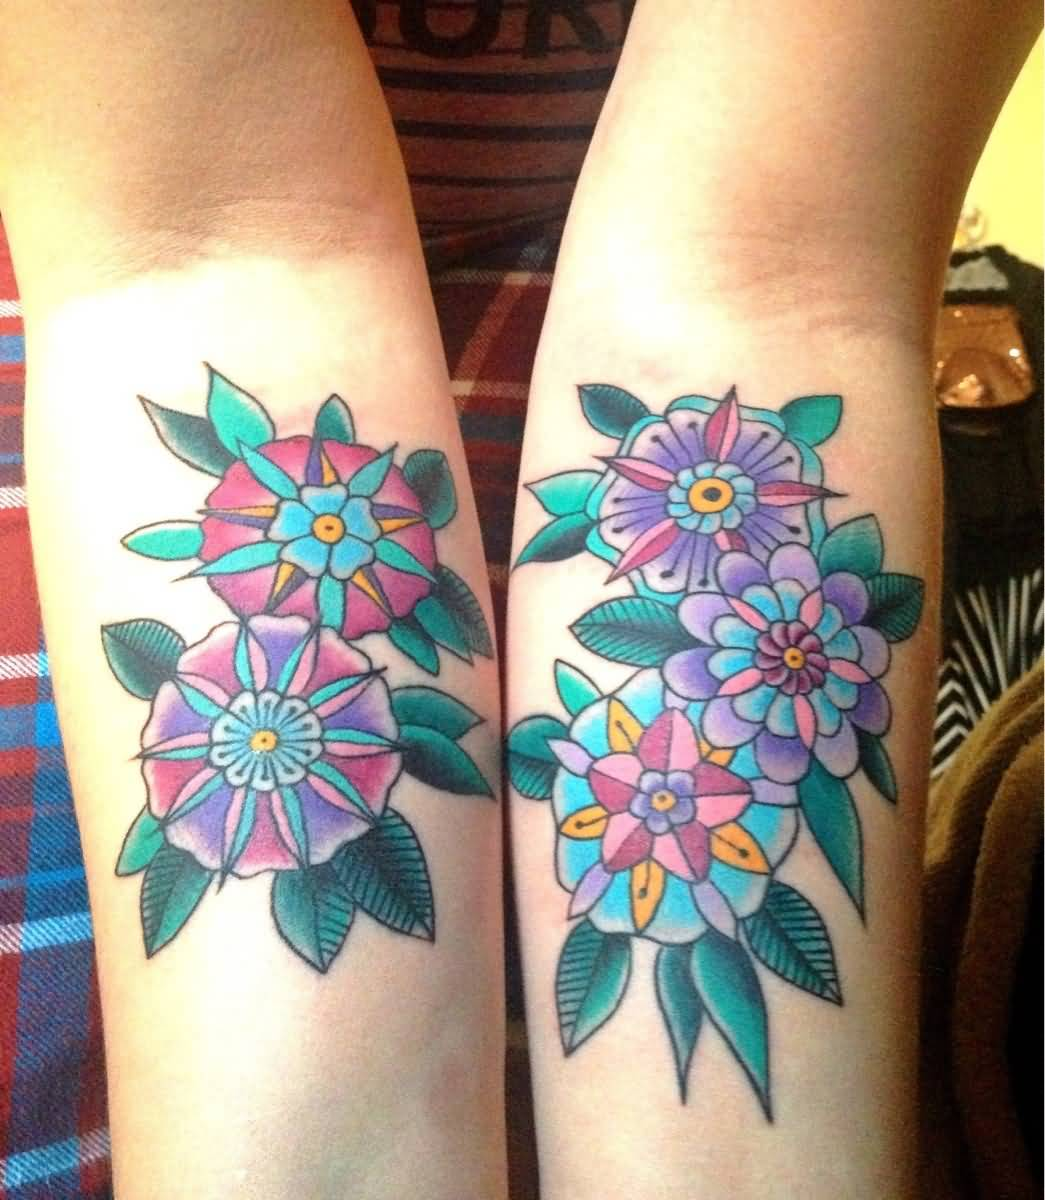 d91e66dfe103f Flowers Old School Tattoos On Both Forearms